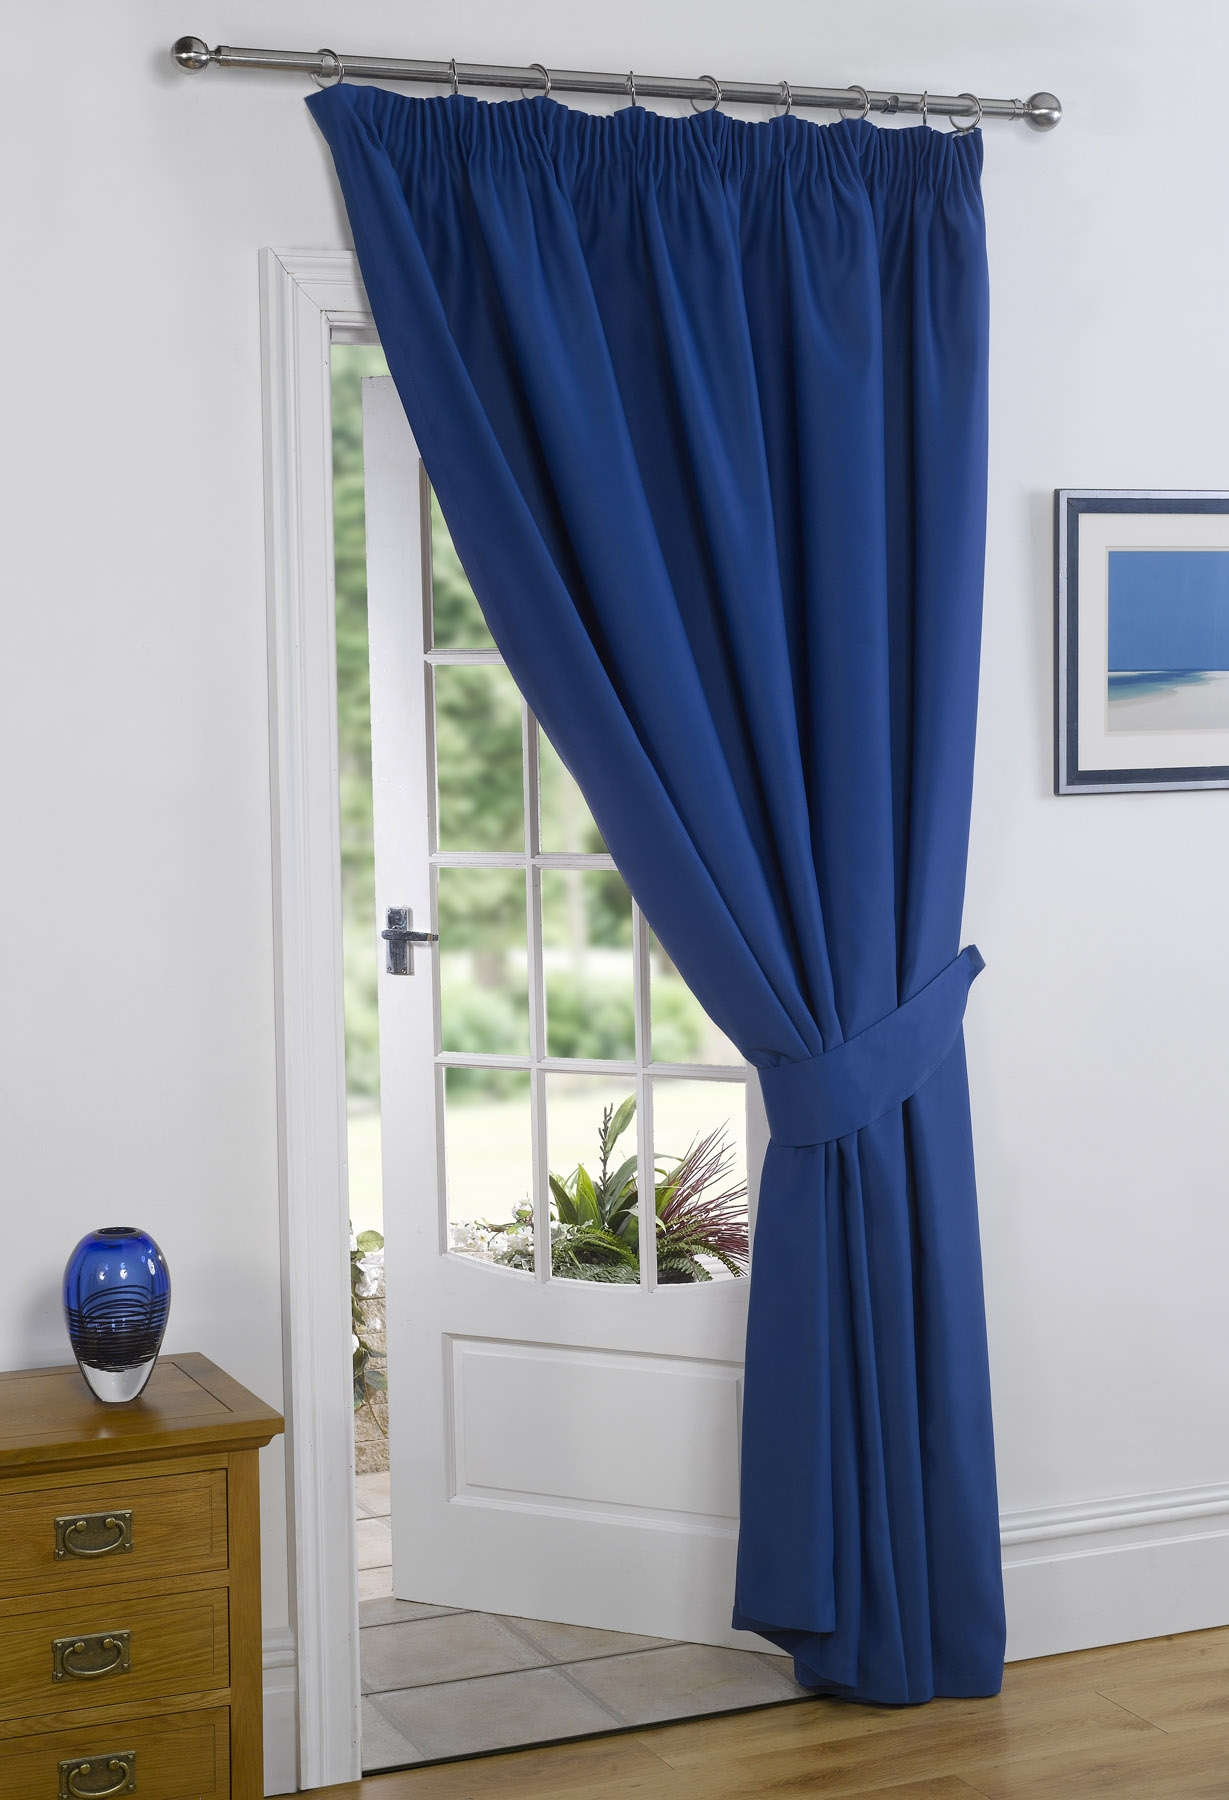 curtains roy pack royal white of window blue panels stripe cur grommet chrome cabana blackout with insulated treatment products thermal